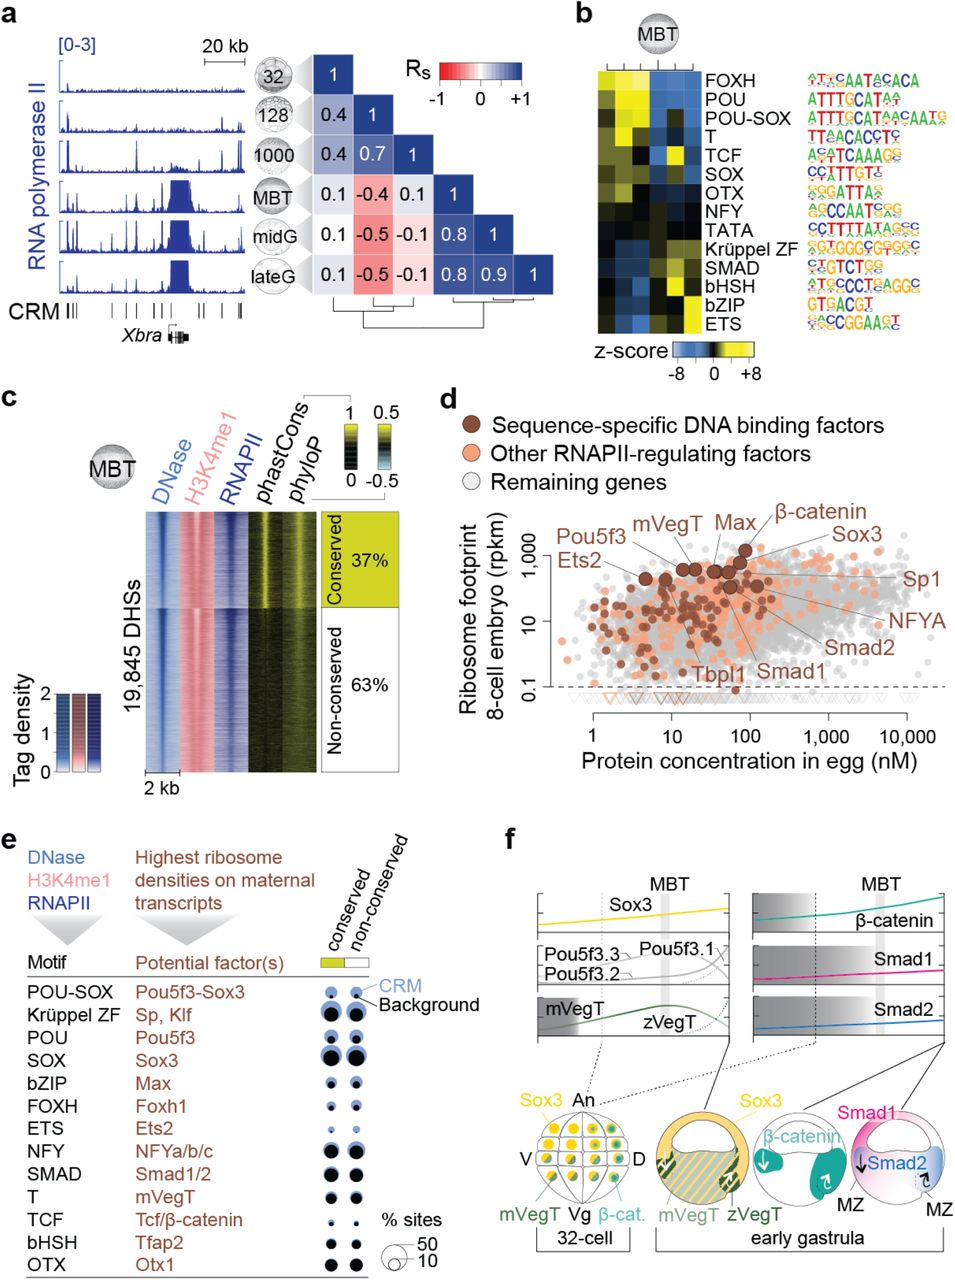 Maternal pluripotency factors prime the zygotic genome to